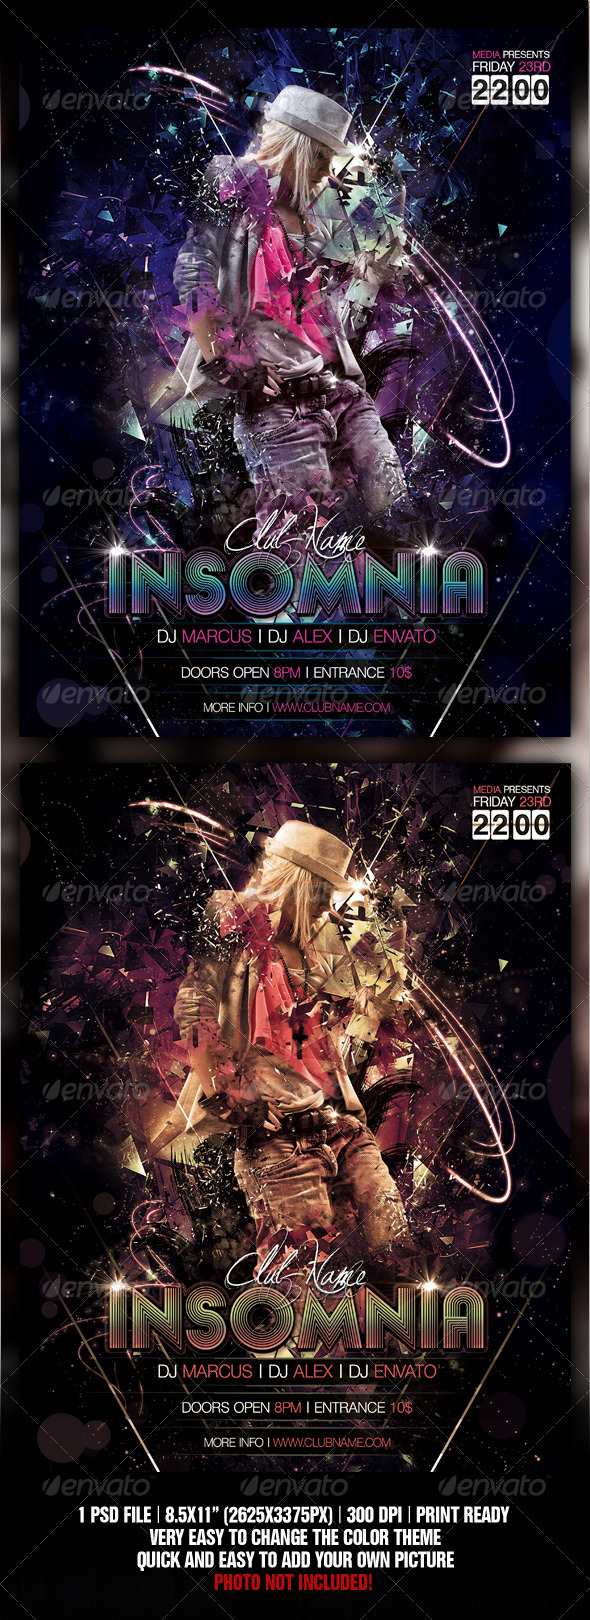 GraphicRiver Insomnia Night Club Party Concert Flyer Poster 560383